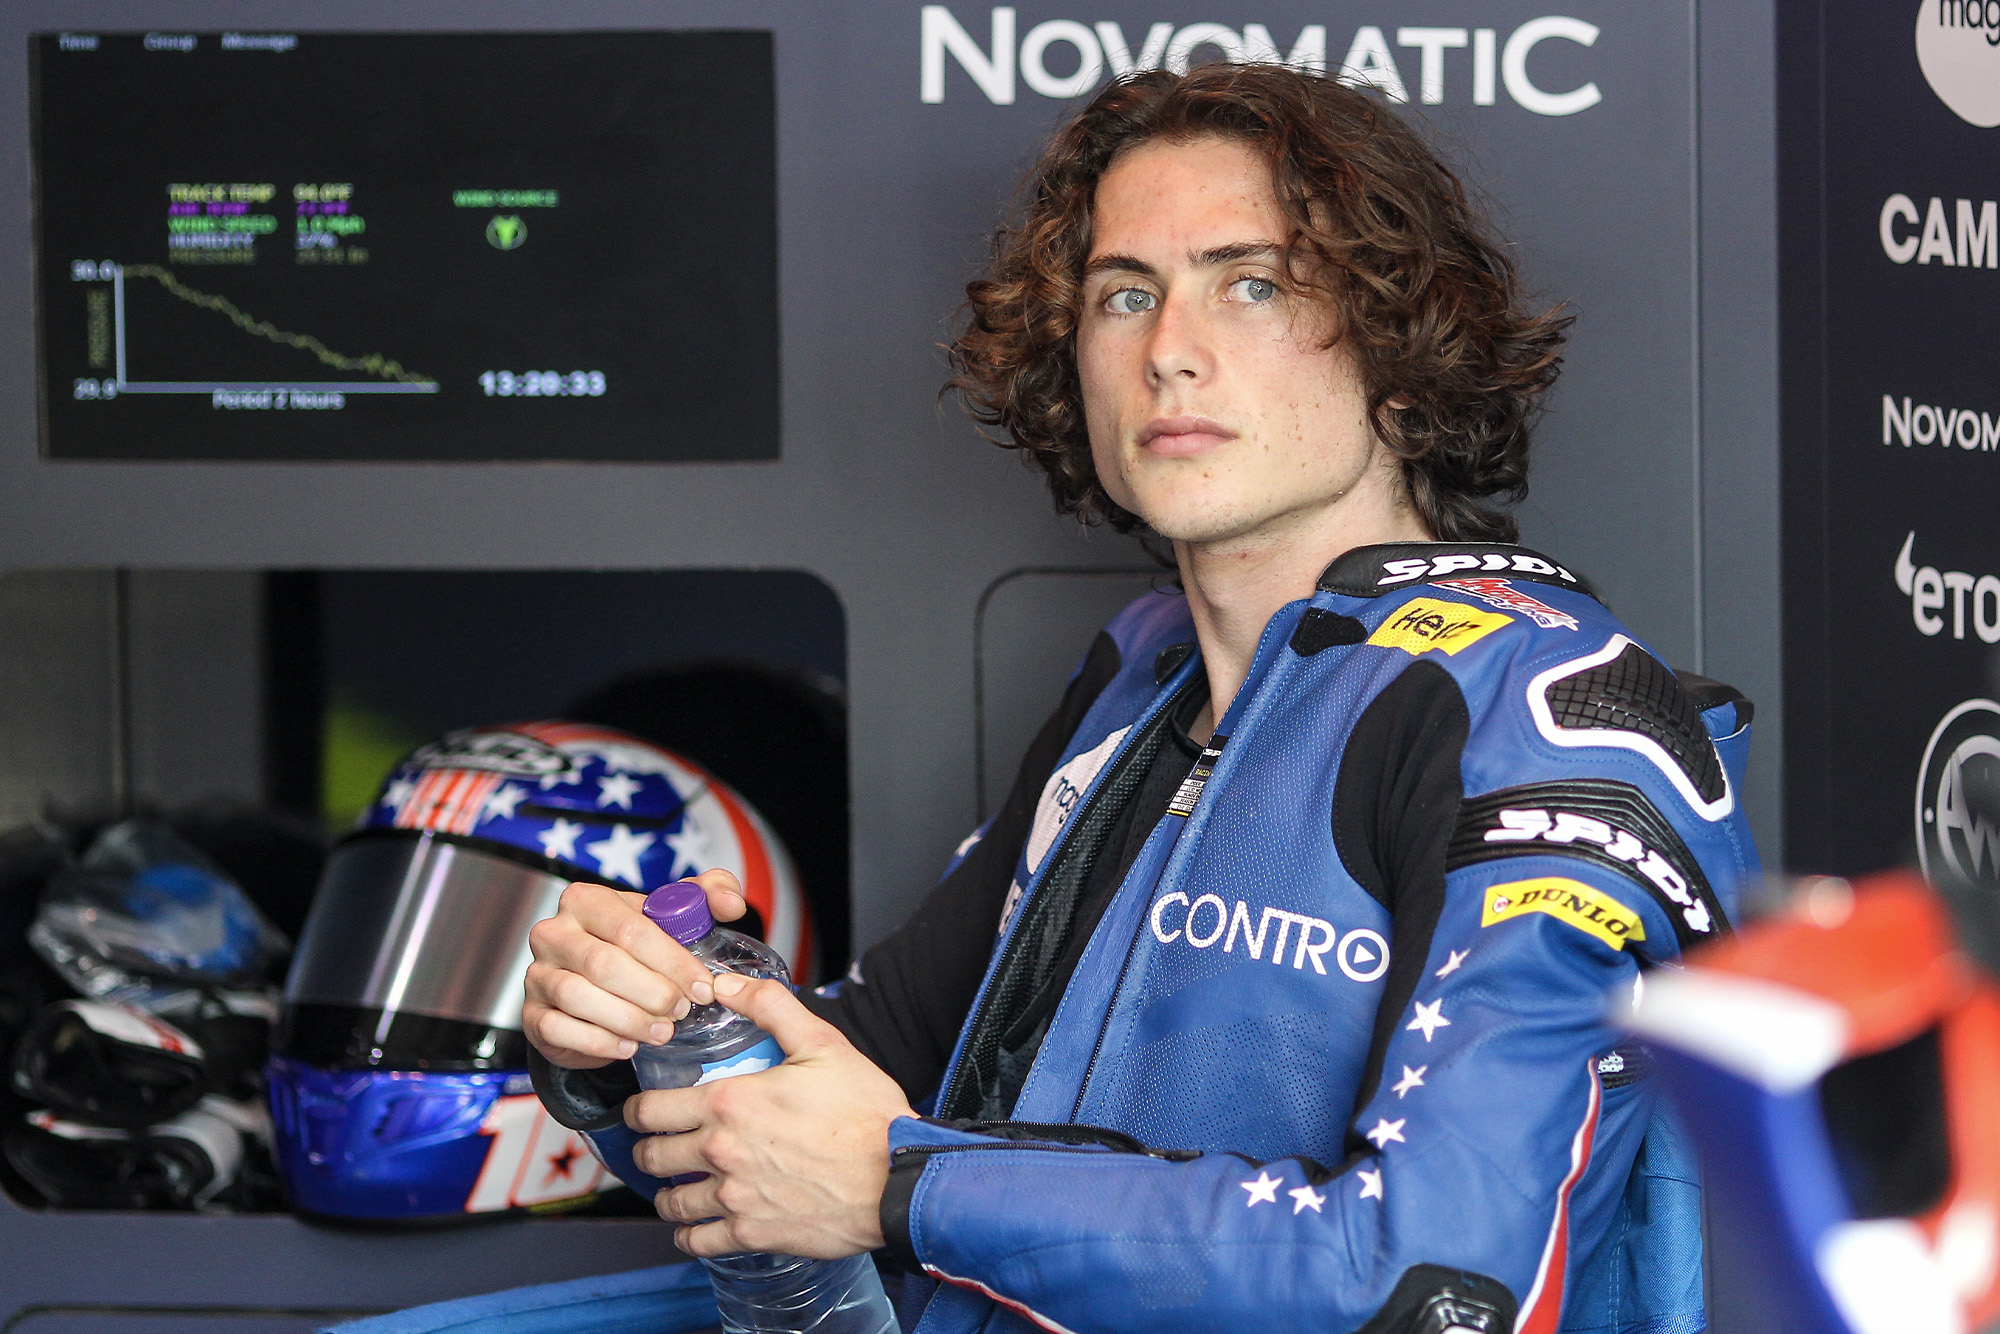 The next MotoGP star? Who is Joe 'no relation' Roberts?